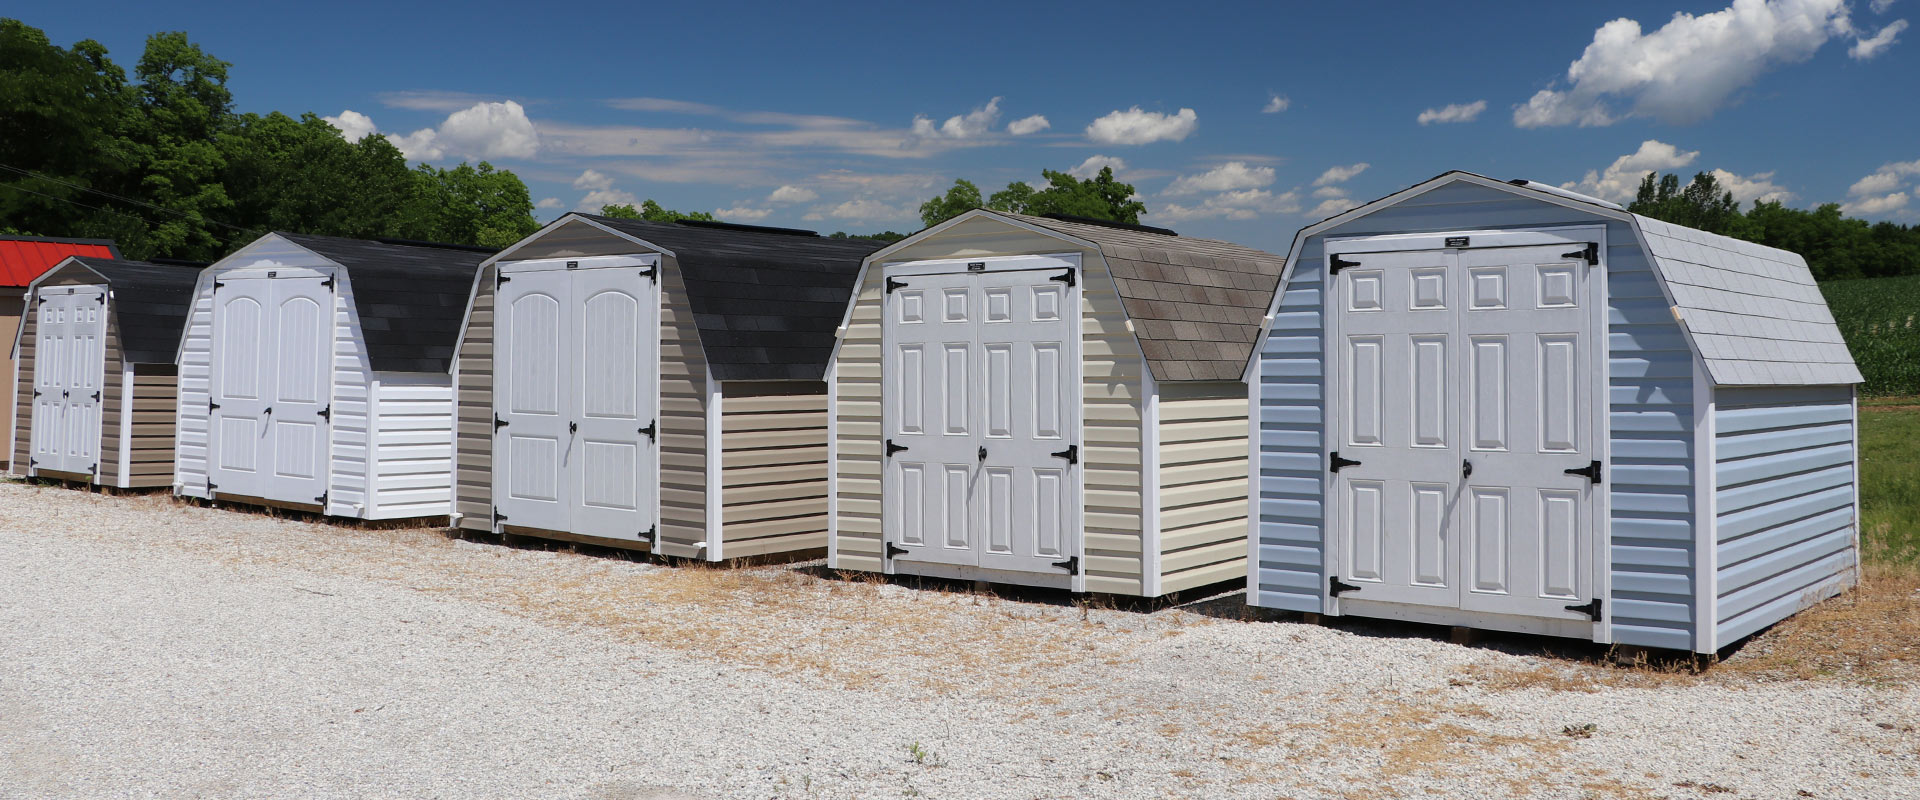 If You Need A Storage Shed For Your Backyardu2026you Are At The Right Place!